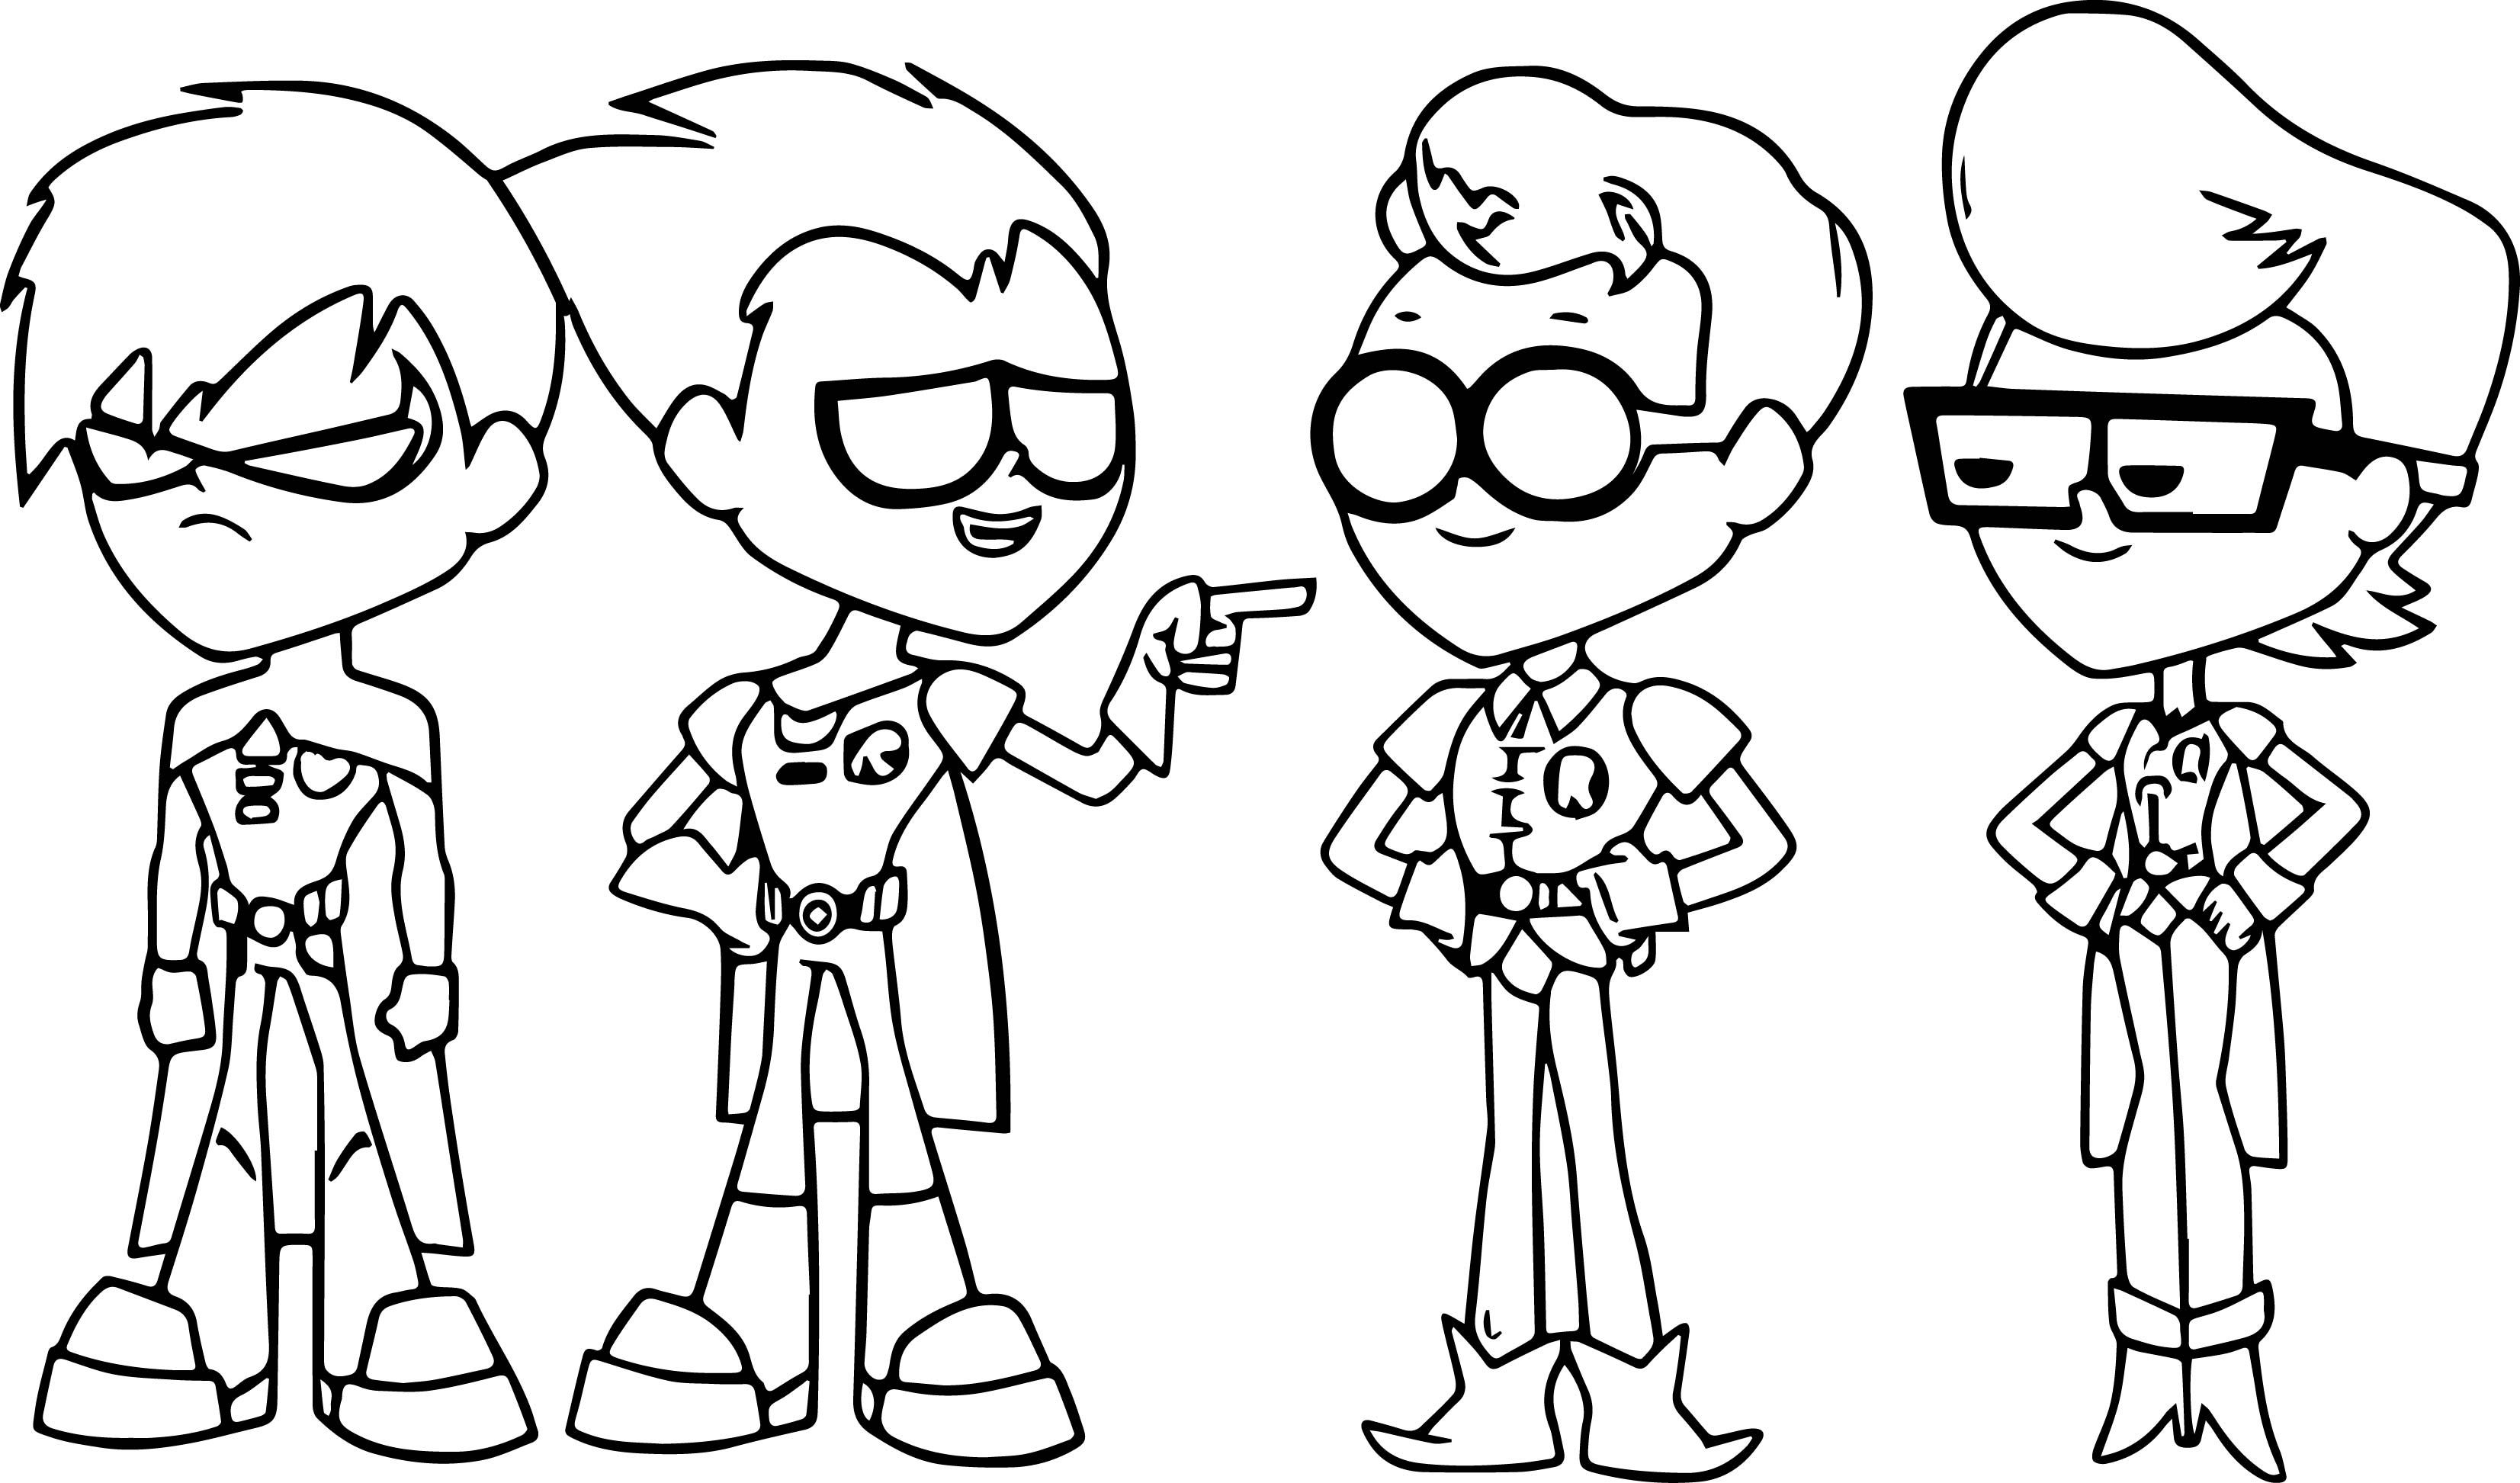 titans coloring pages teen titans coloring pages best coloring pages for kids coloring titans pages